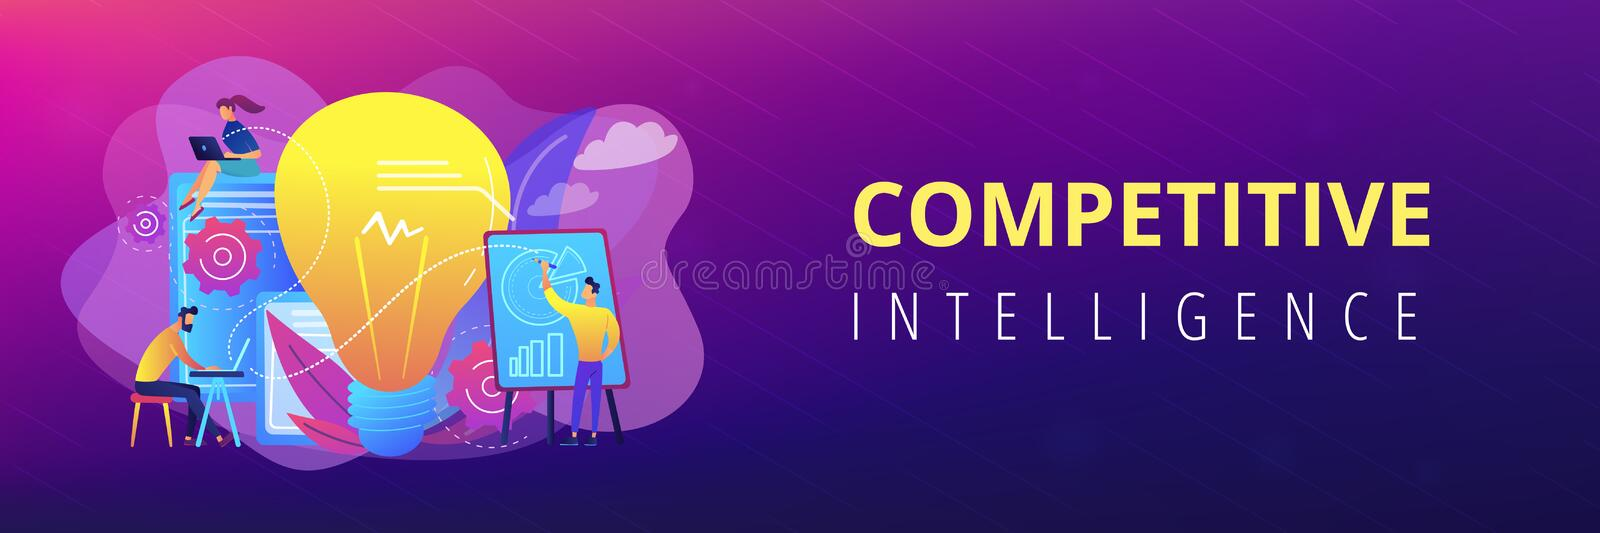 Competitive intelligence concept banner header. vector illustration